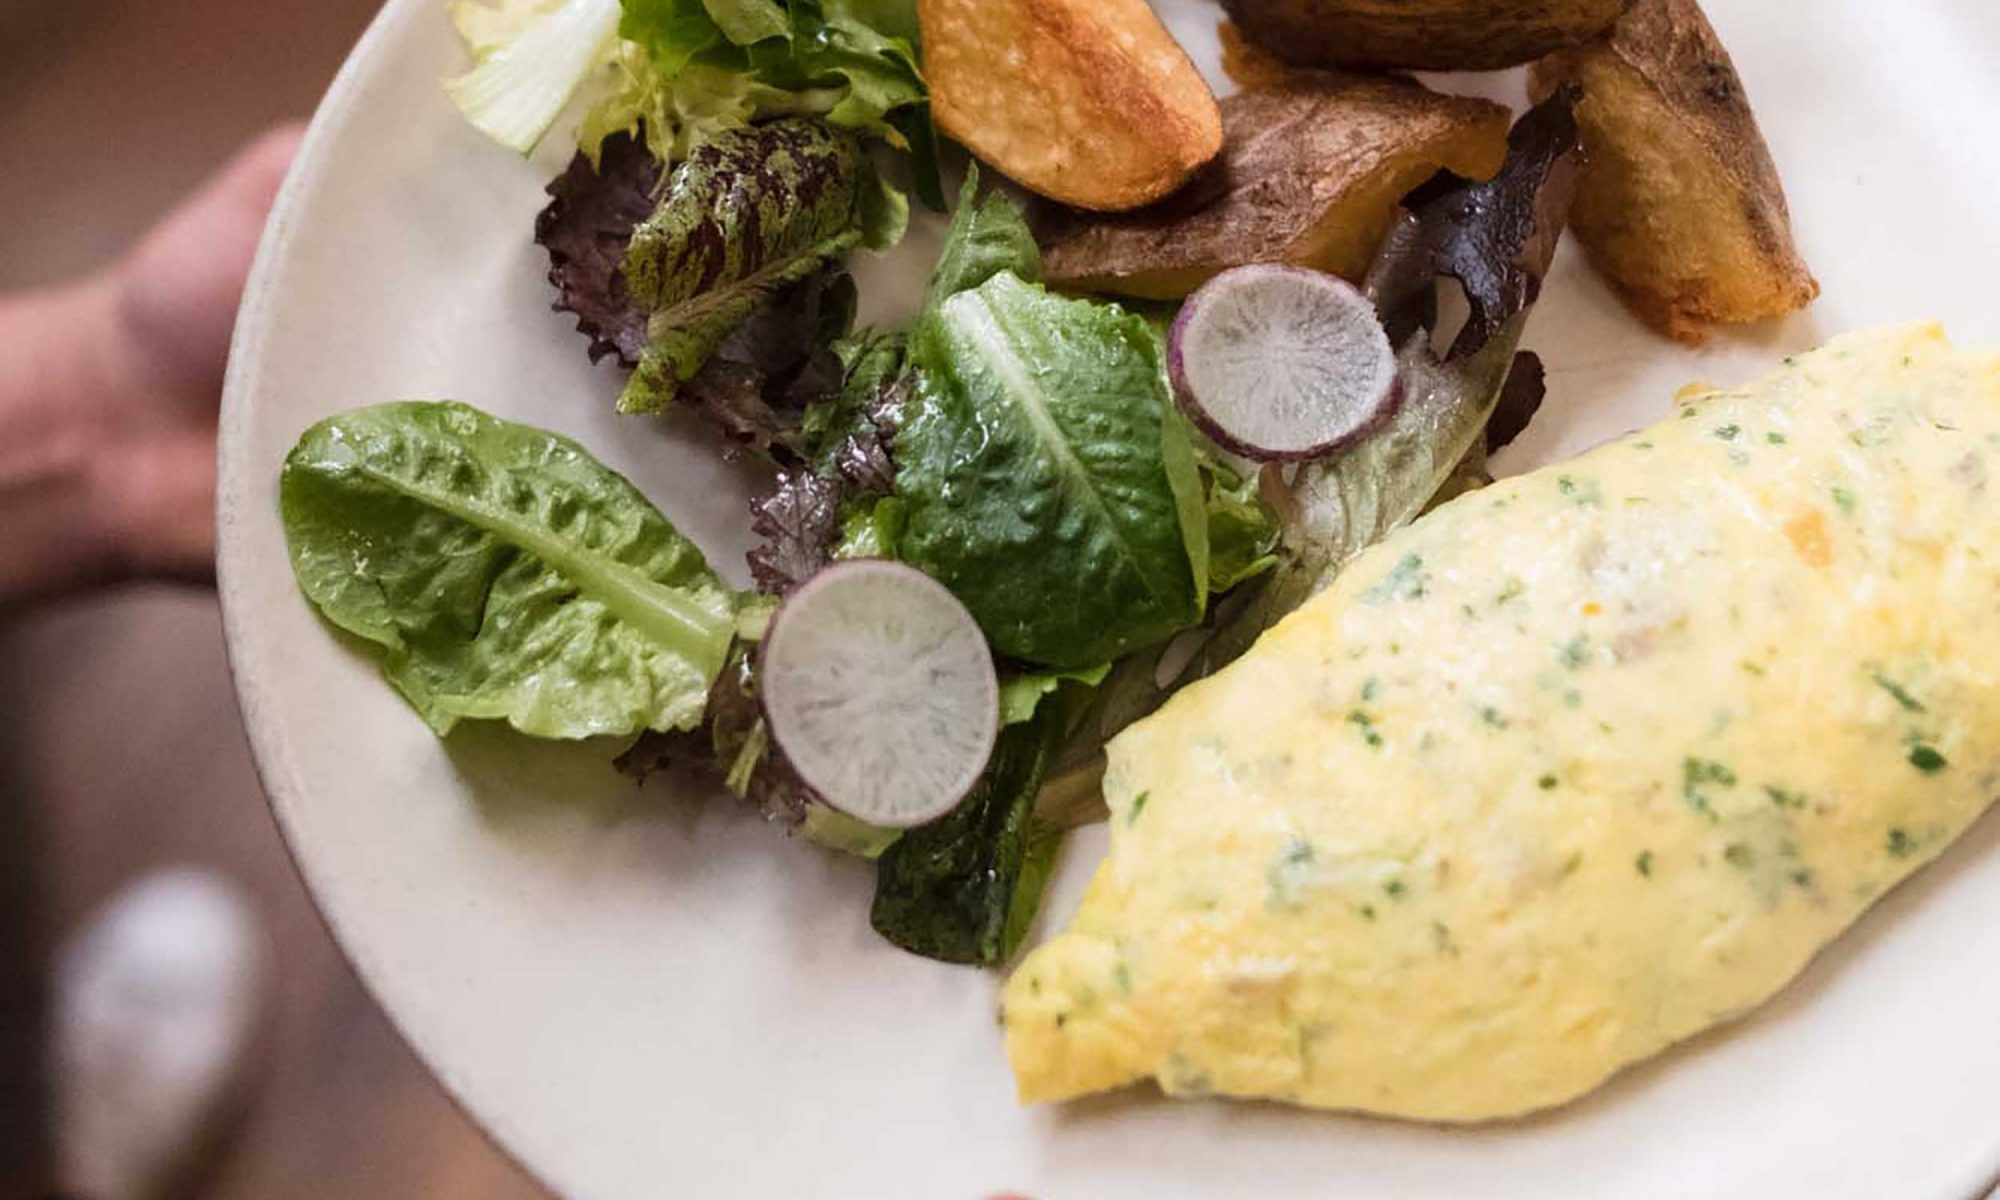 EC: This Champagne Omelet with Truffle Is the Classiest Way to Eat Your Eggs